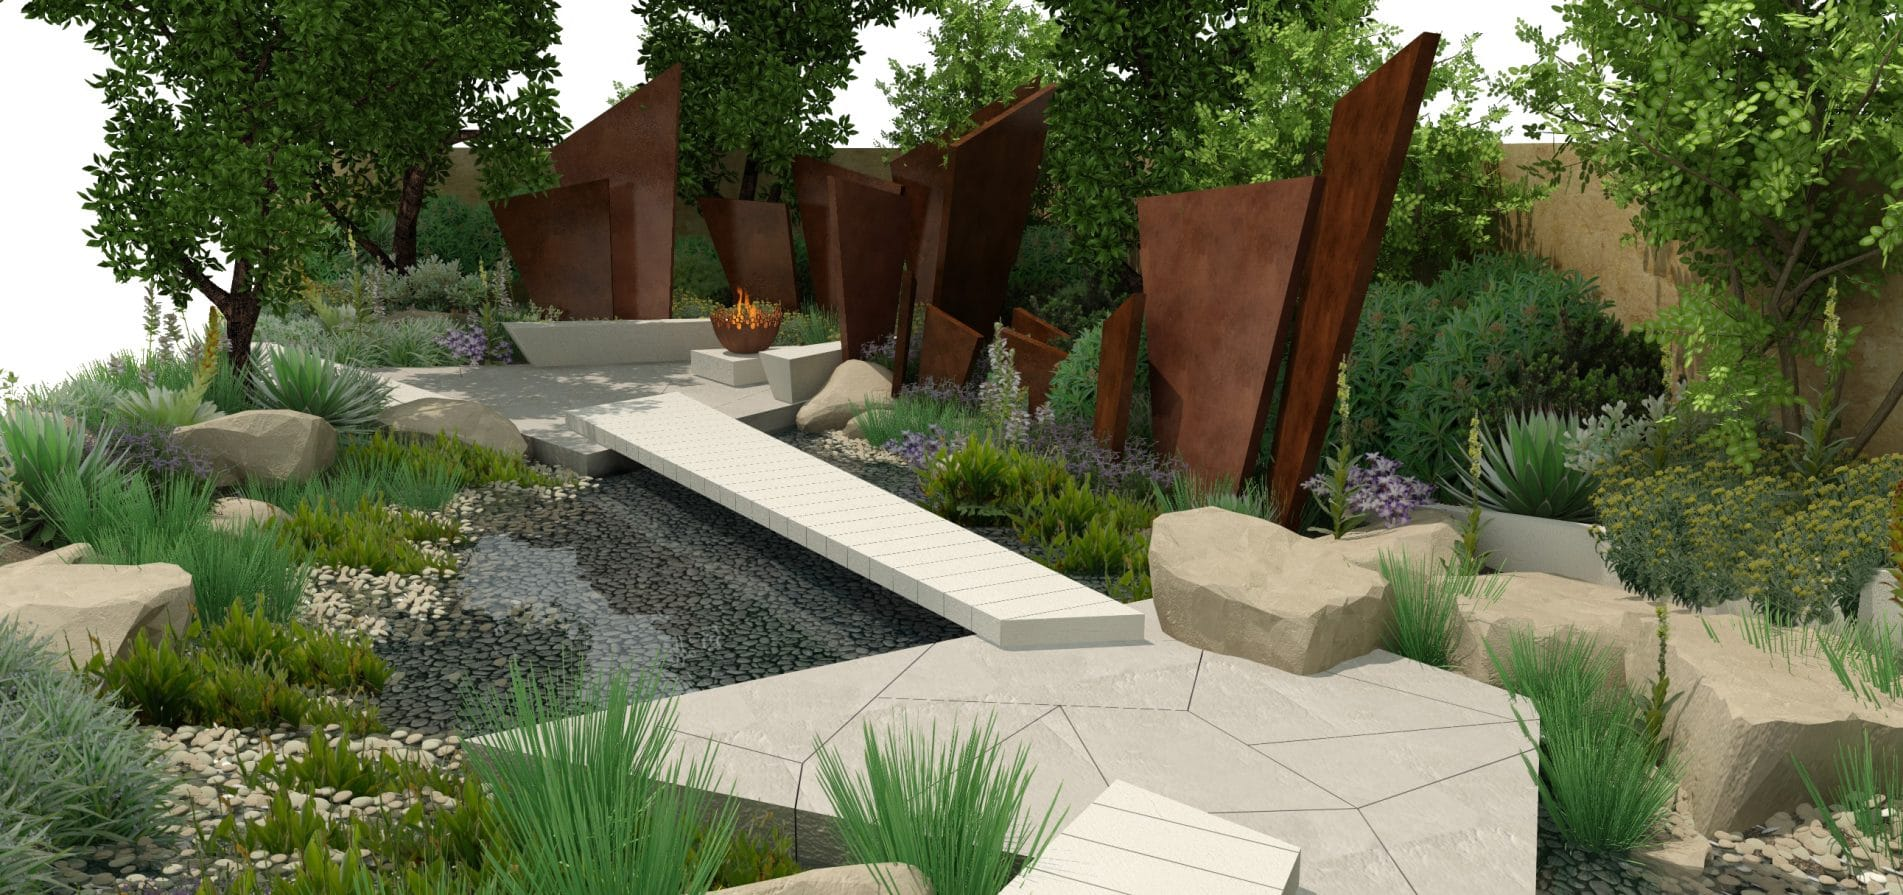 Chelsea flower show 2016 andy sturgeon design for Garden design ideas 2016